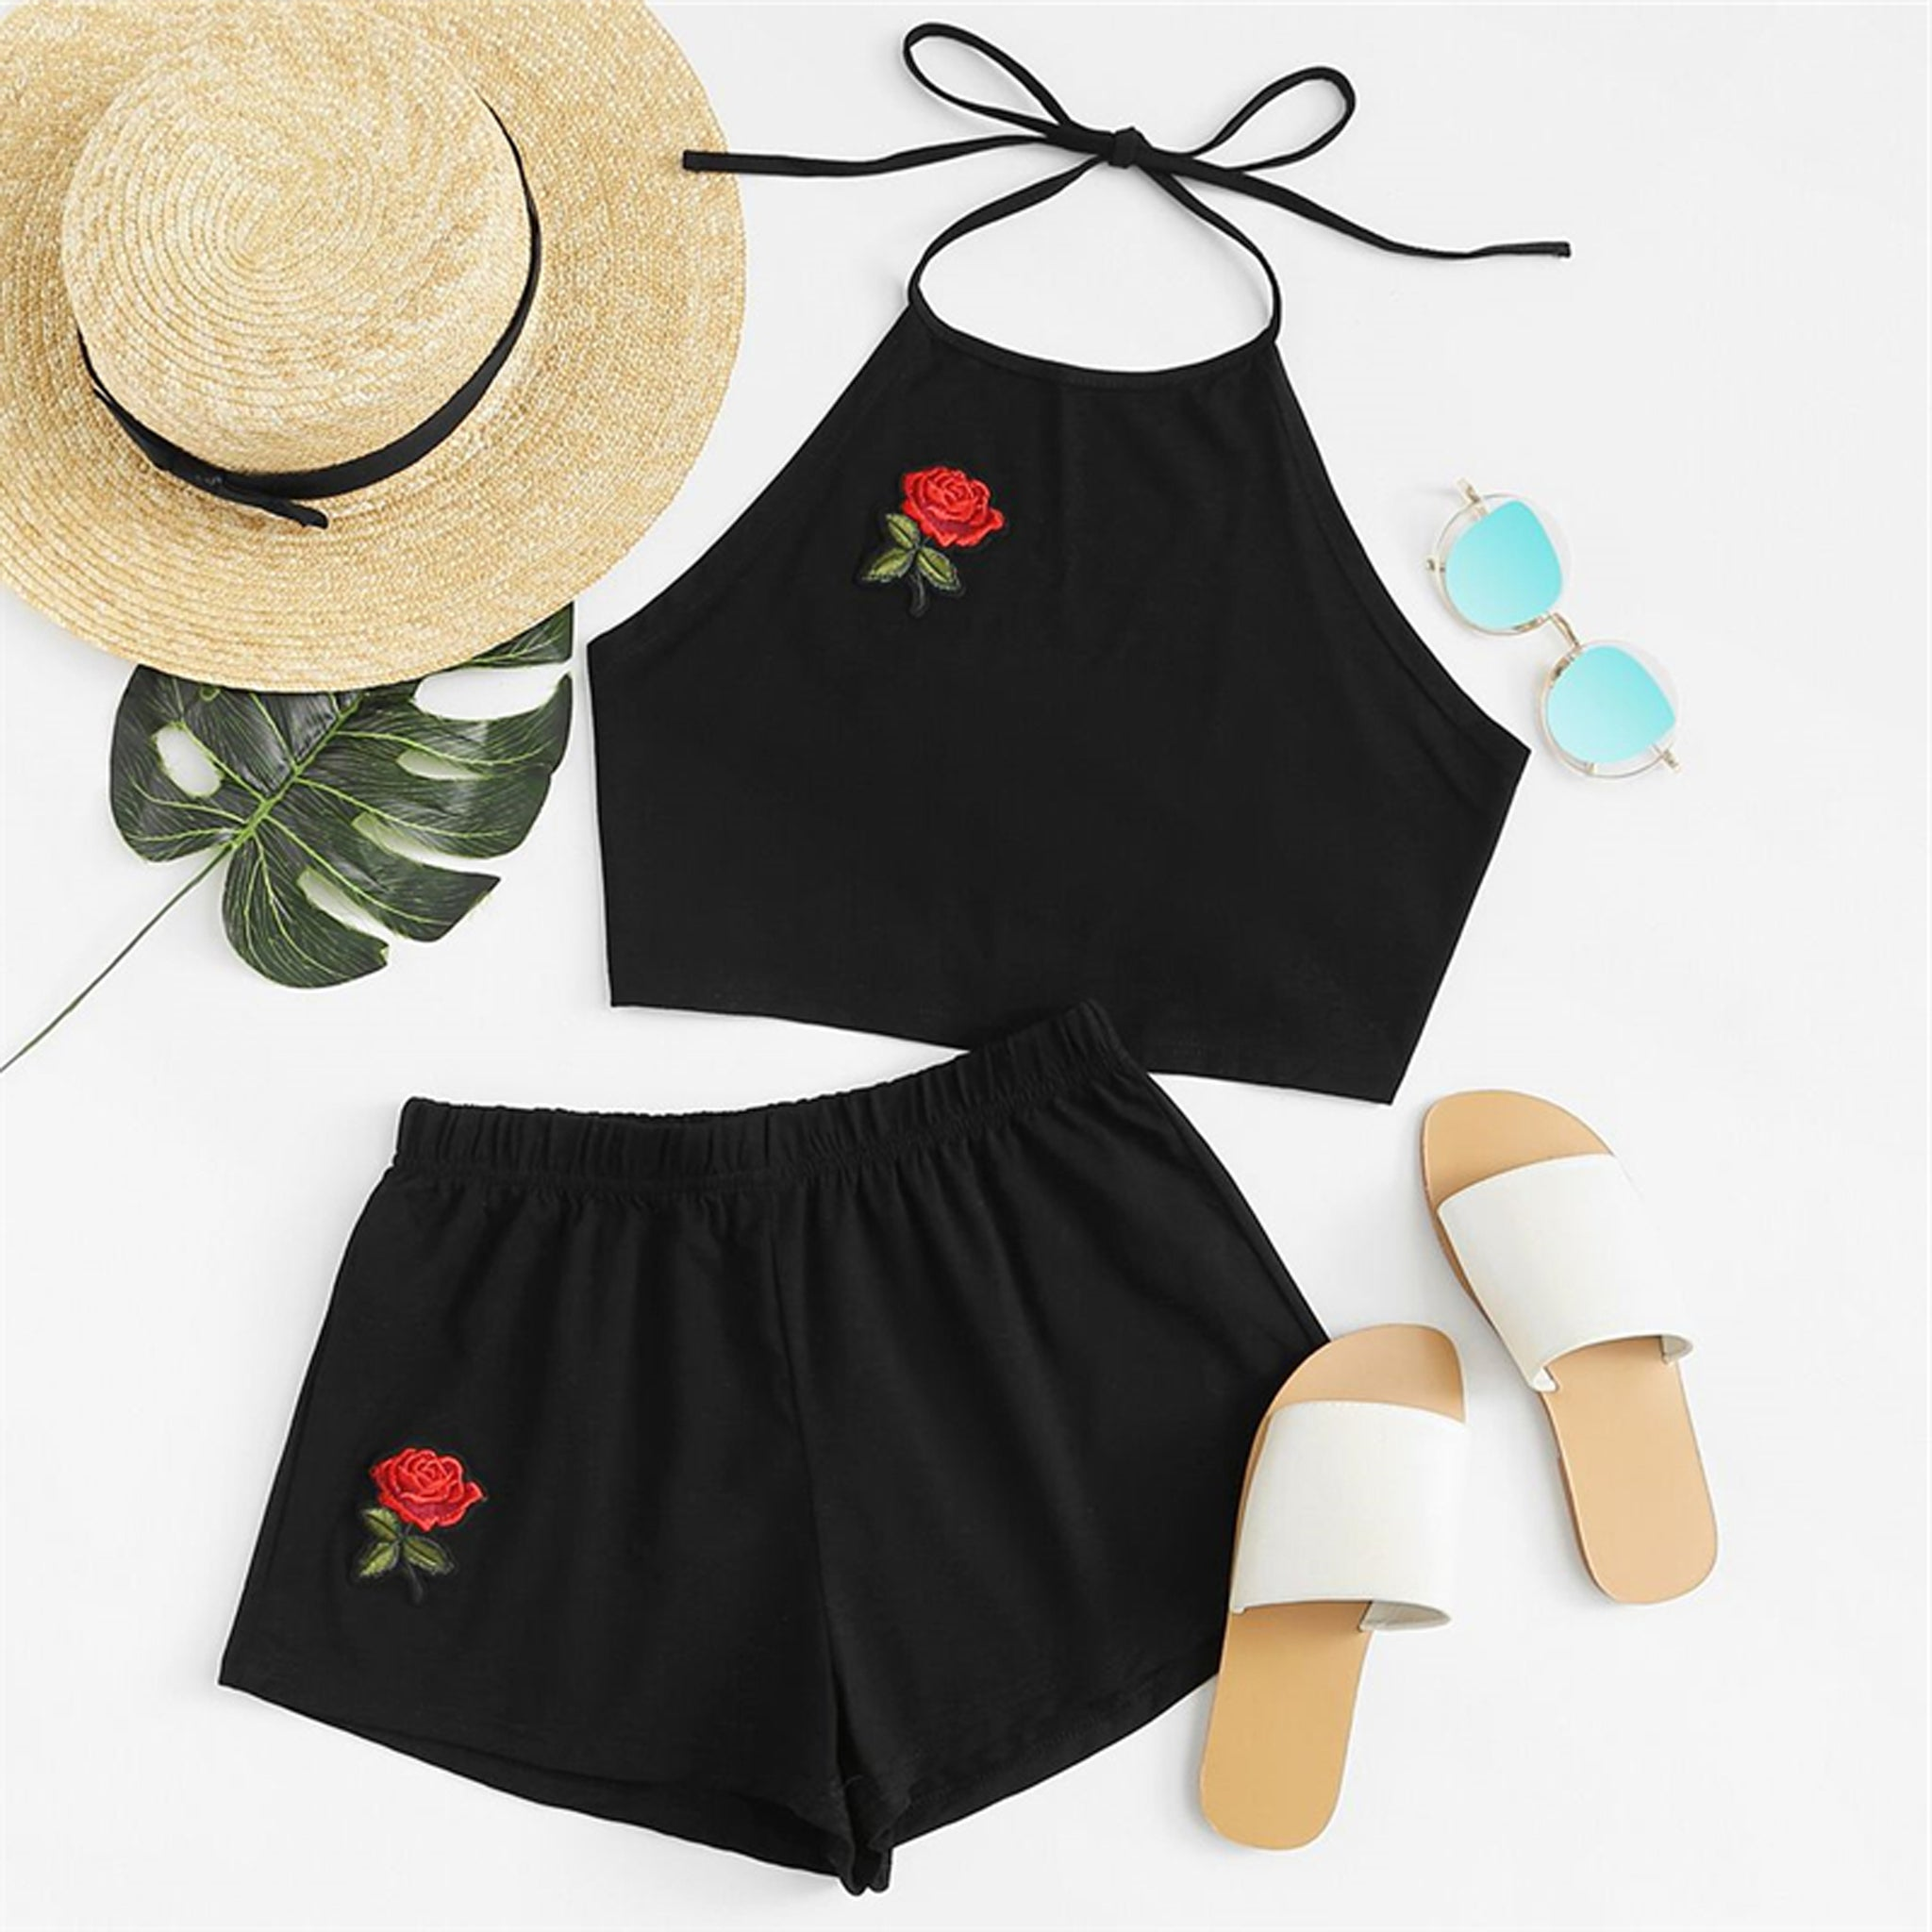 7f3899fae055 ... Cute Summer Outfits for Teen Girls - Casual Girly Rose Embroidered  Beach Halter Top with High ...